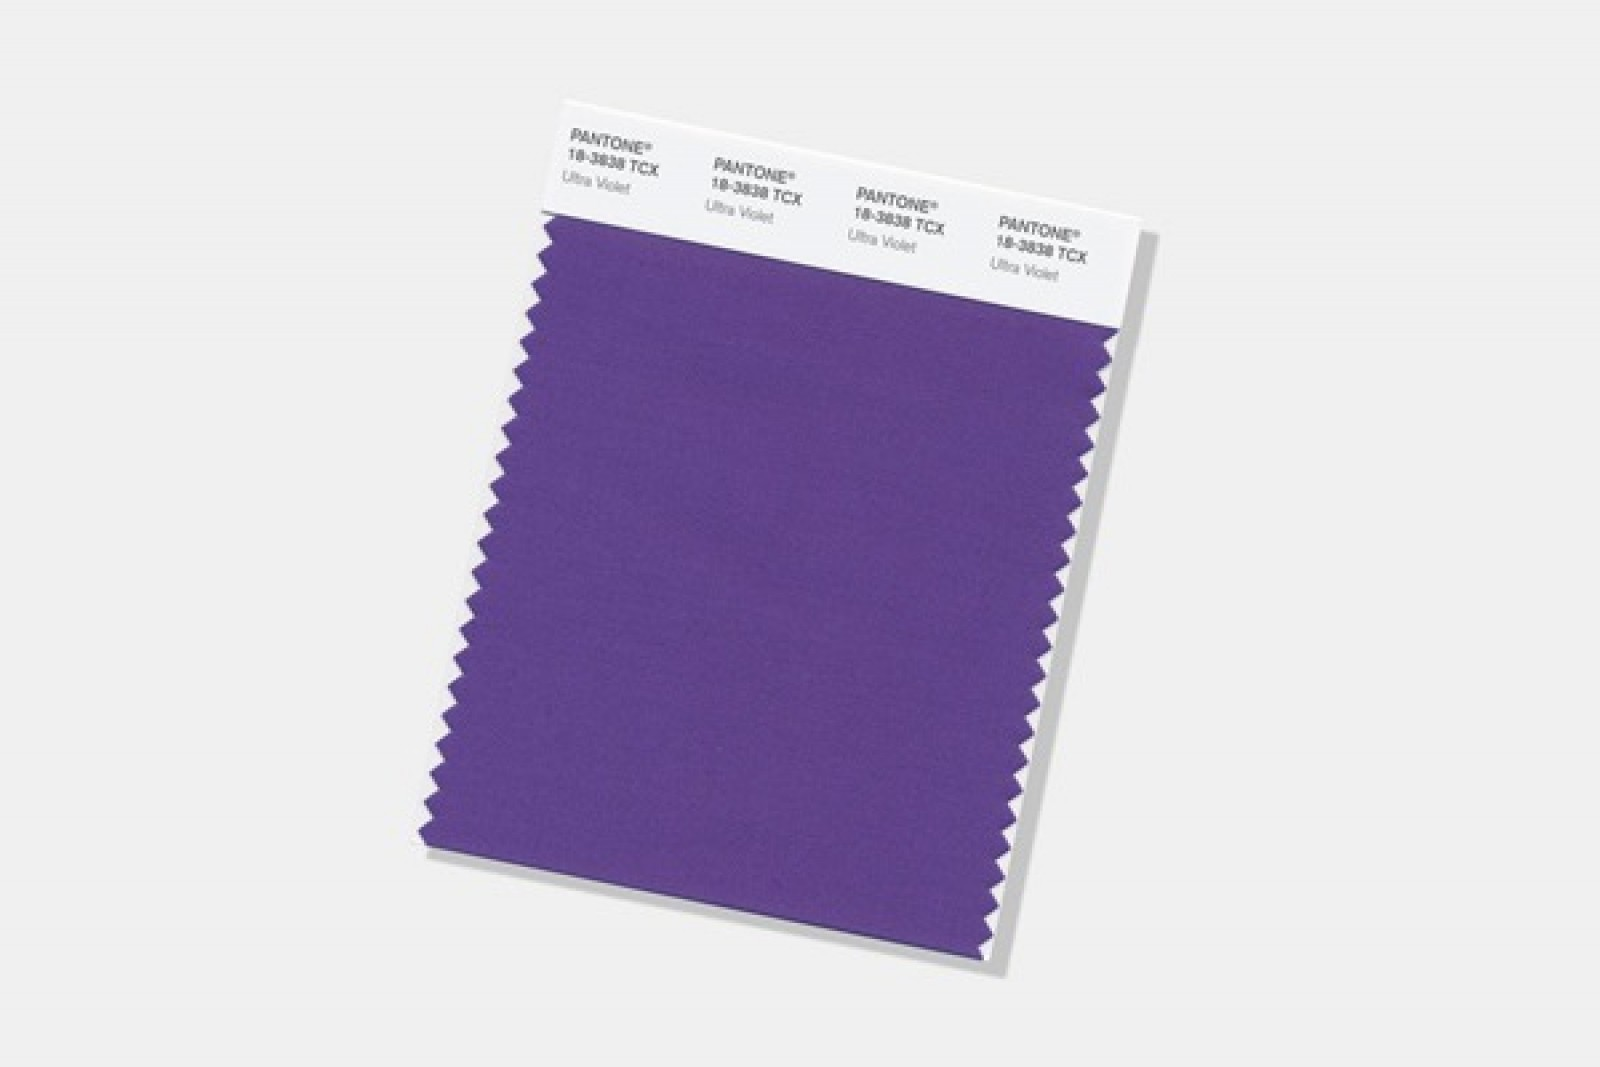 https_%2F%2Fhk.hypebeast.com%2Ffiles%2F2017%2F12%2Fpantone-2018-color-of-the-year-ultra-violet-purple-1-1.jpg